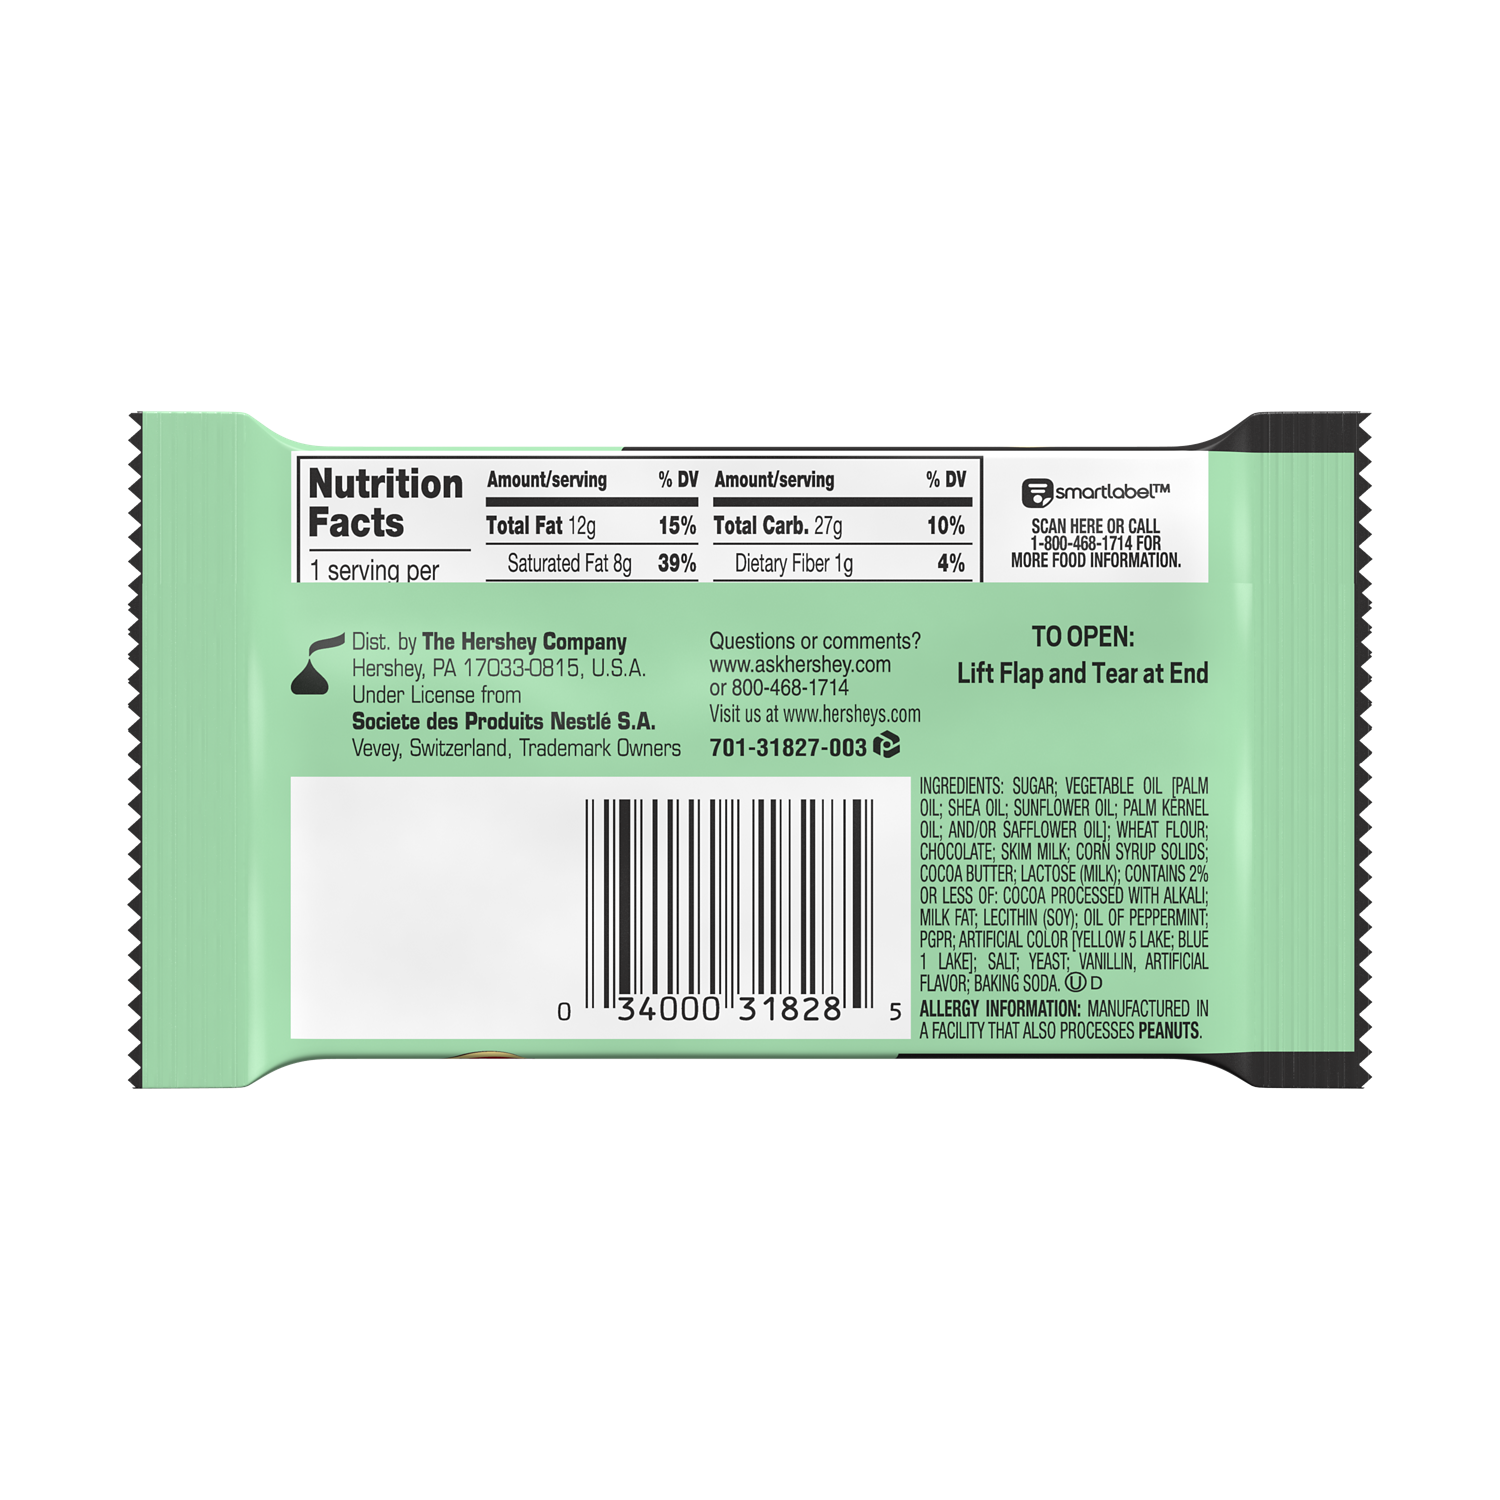 KIT KAT® DUOS Mint and Dark Chocolate Candy Bar, 1.5 oz - Back of Package